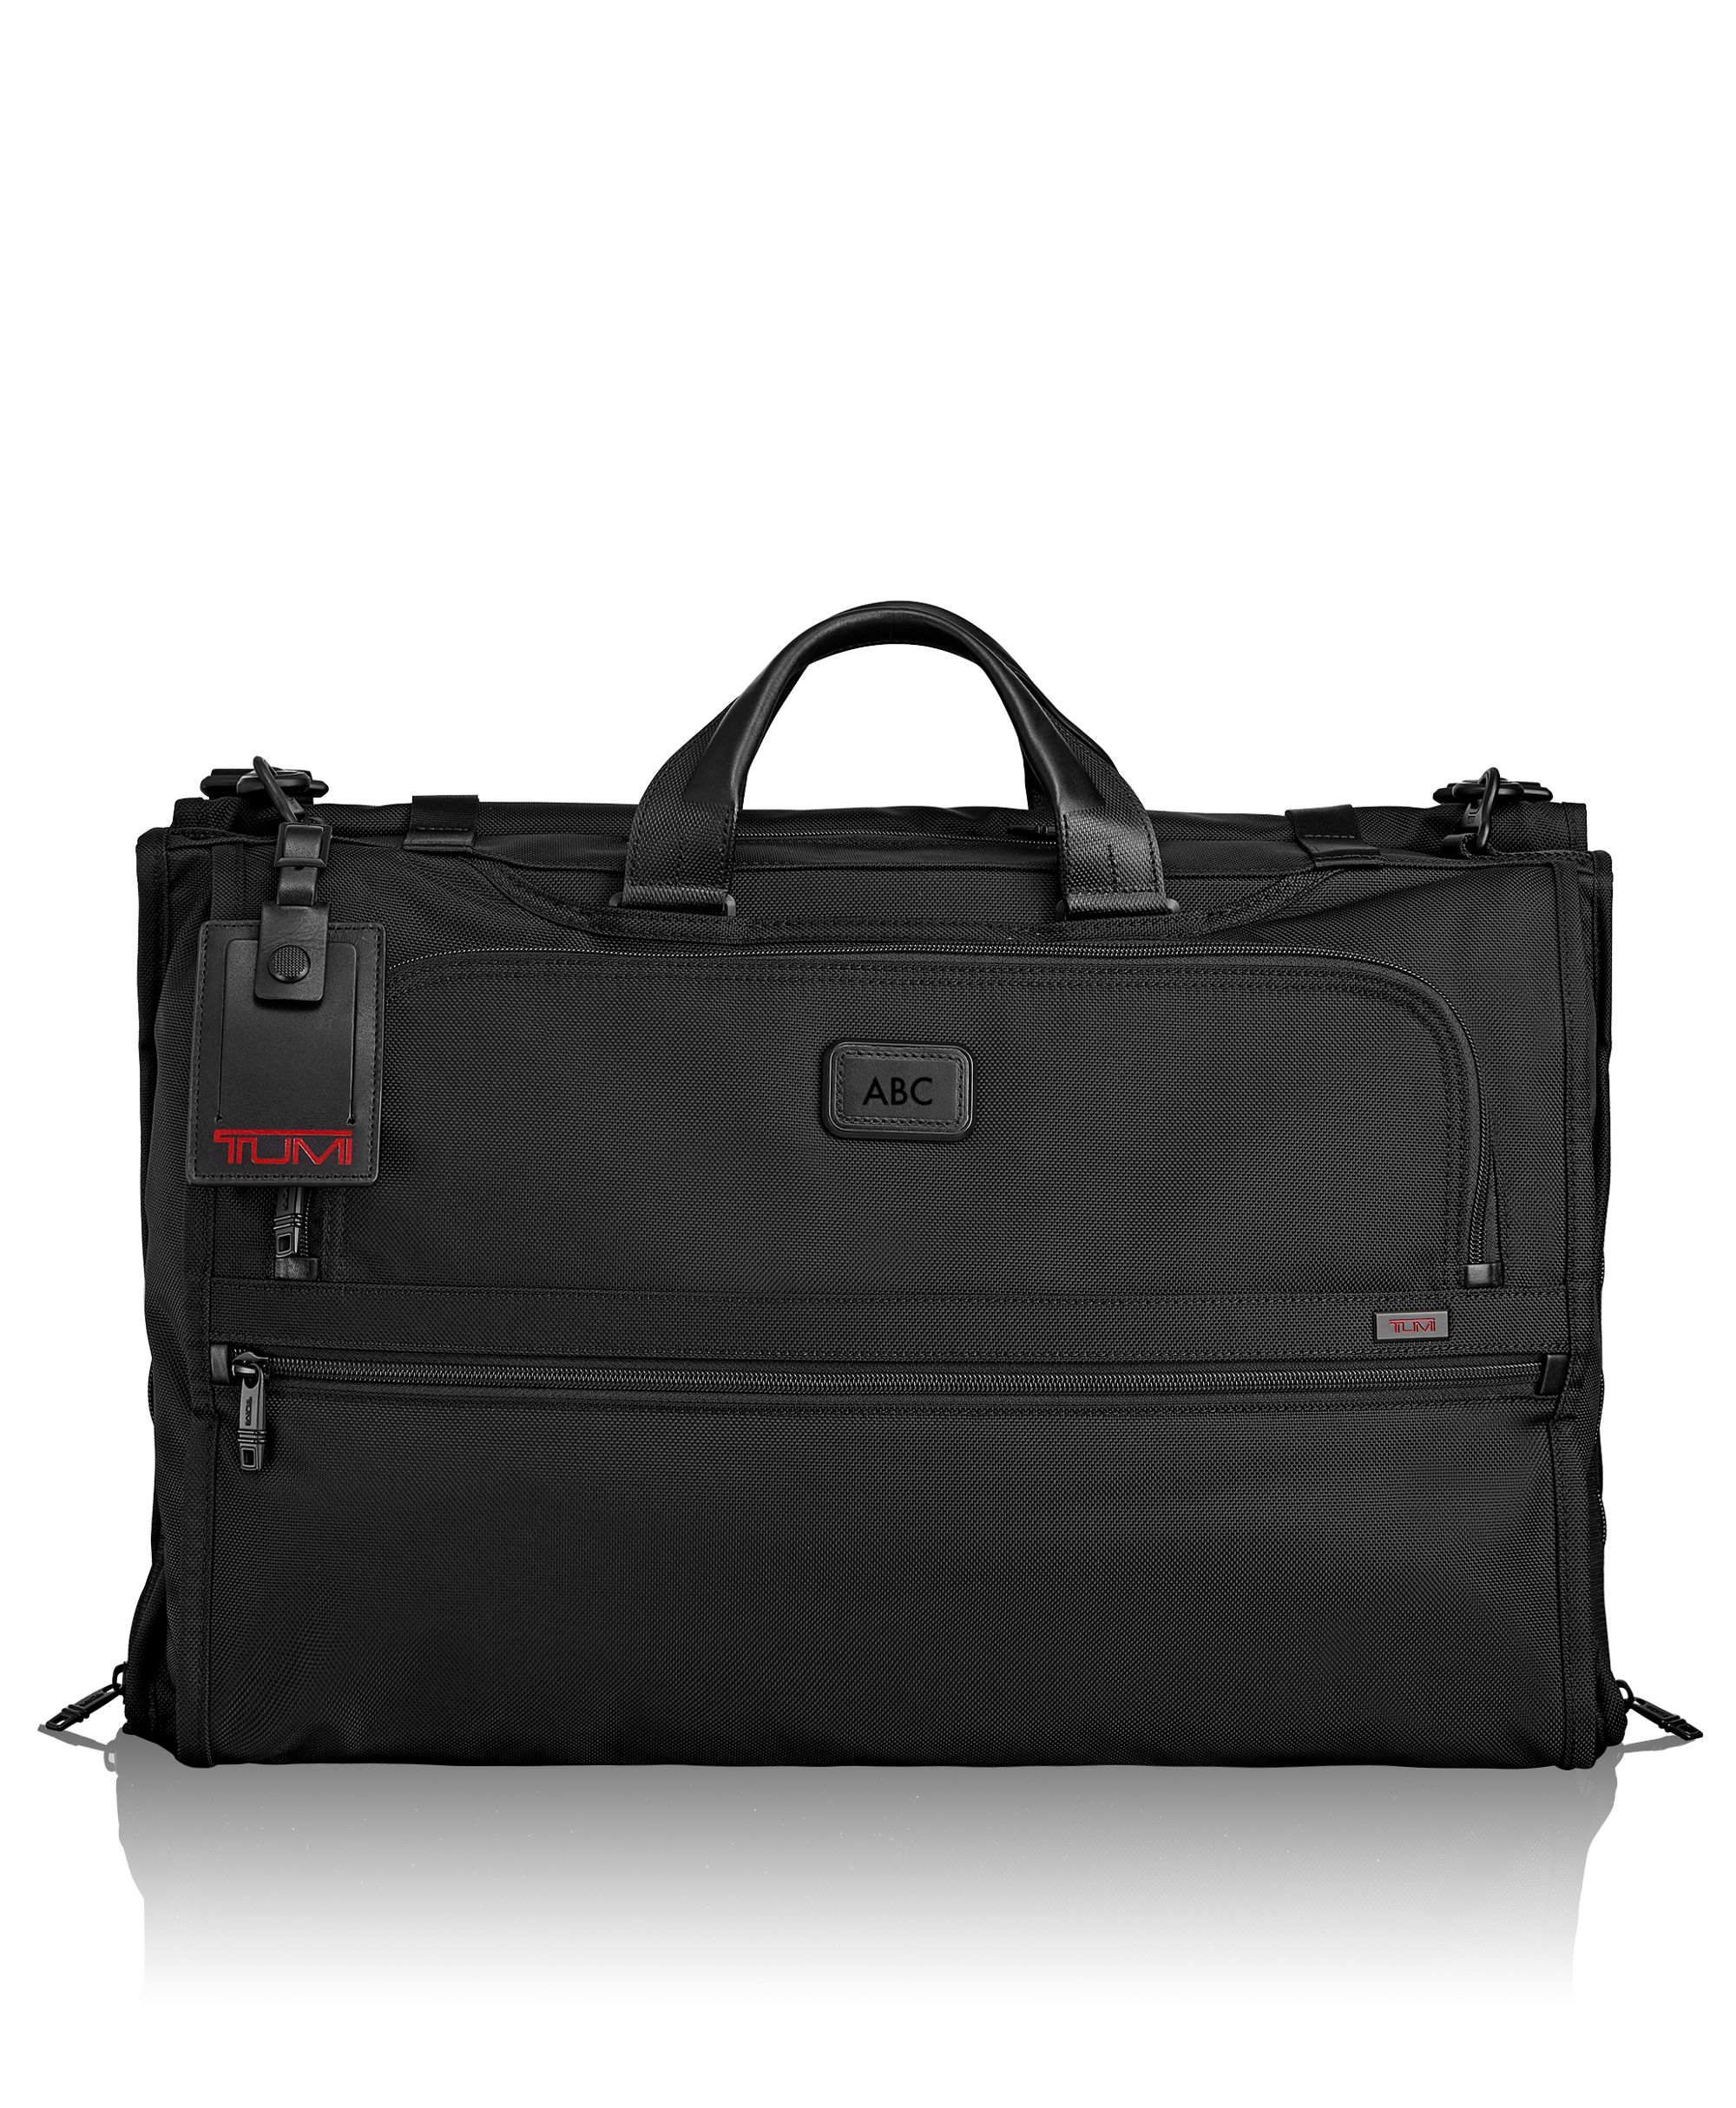 garment bags wheeled carry on u0026 more tumi united states